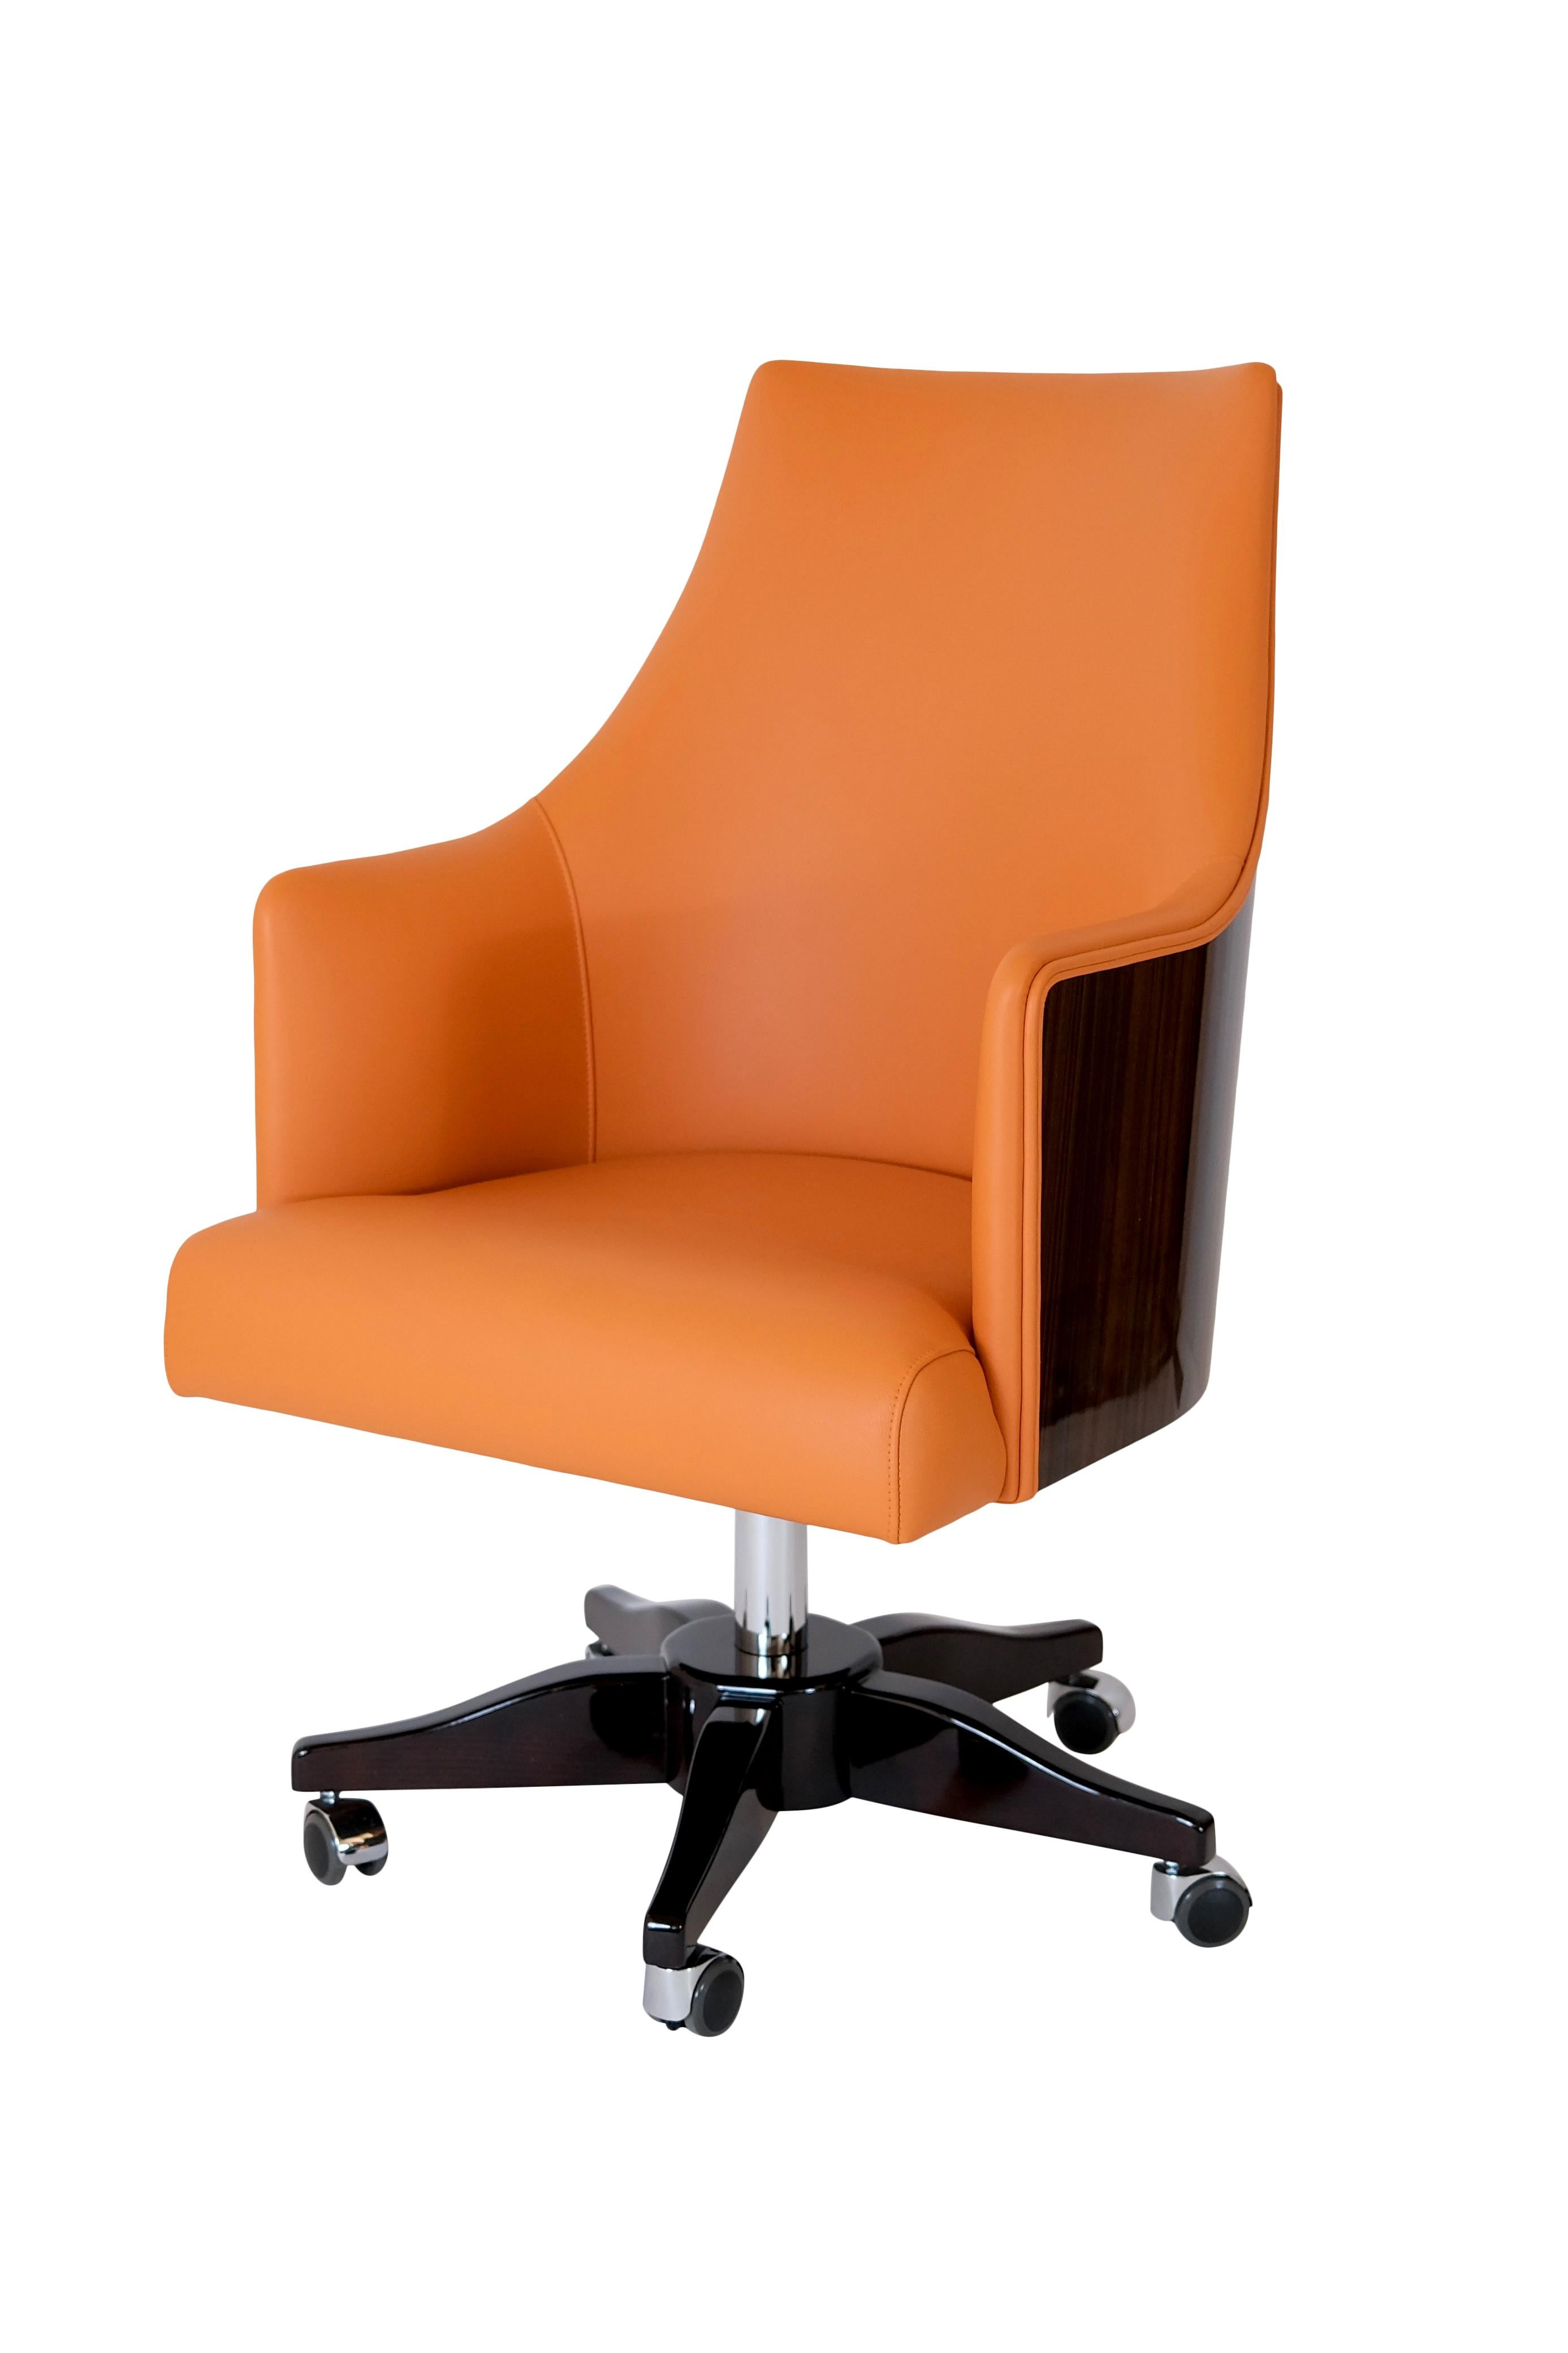 Office Chair in Leather and Real Wood Veneer in the Style of French Art Deco